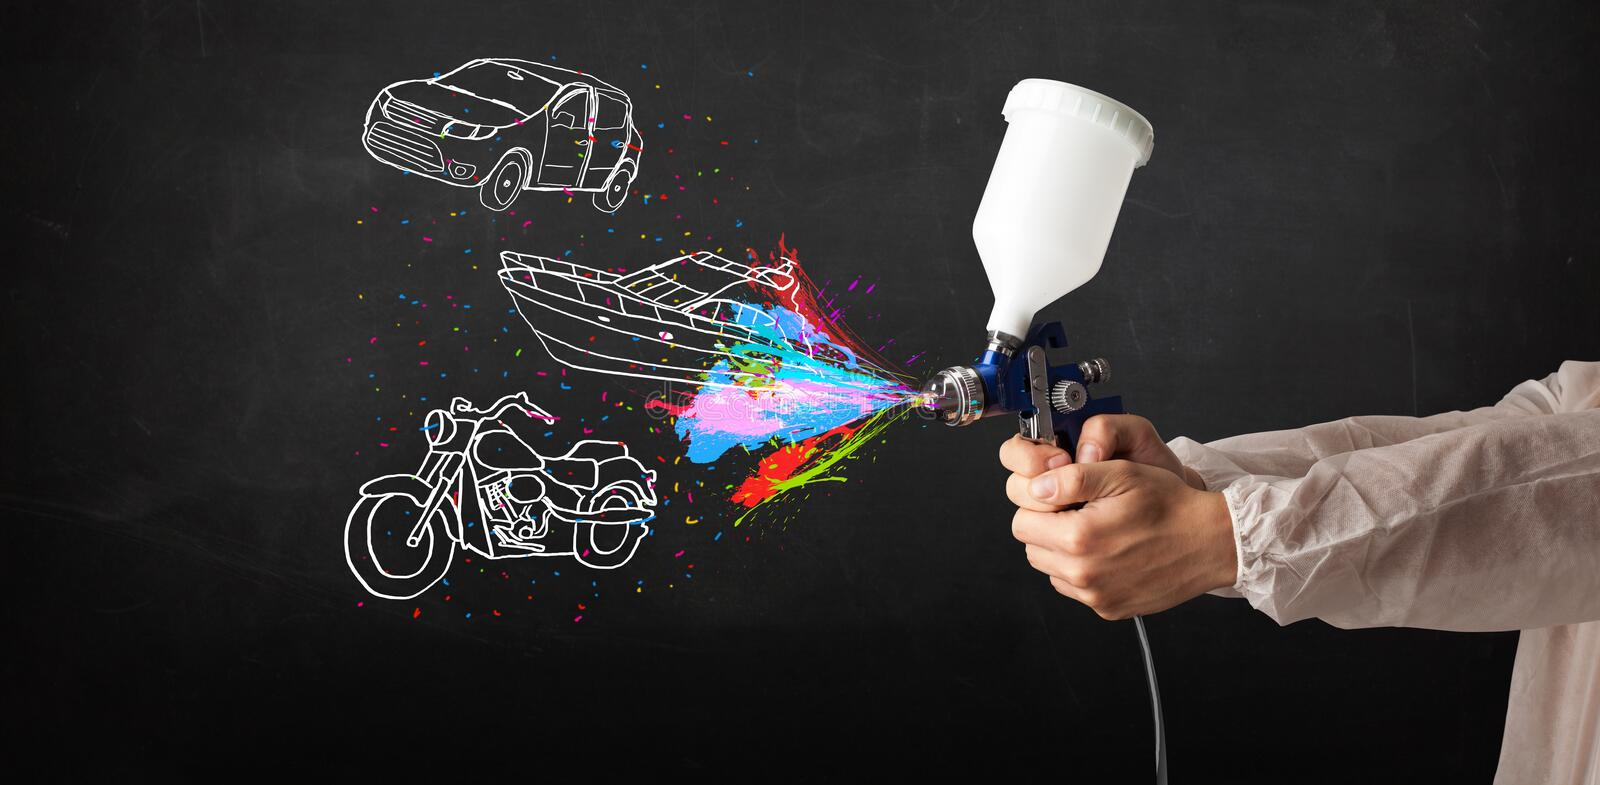 Download Man With Airbrush Spray Paint With Car, Boat And Motorcycle Draw Stock Photo - Image: 32854840